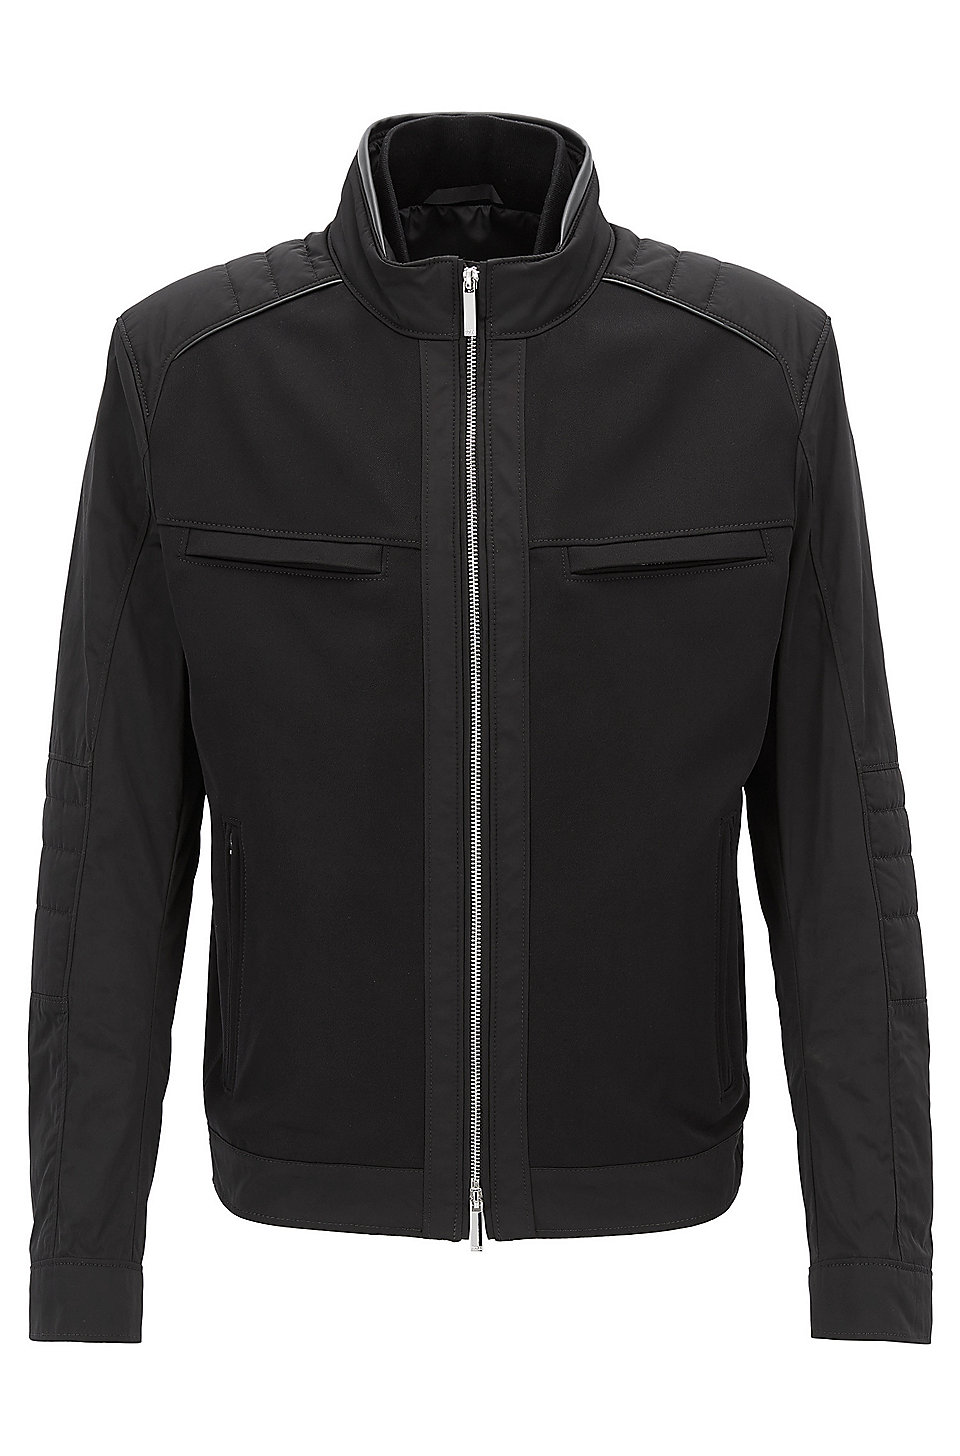 Mercedes-Benz Collection blouson jacket in technical fabric, Black